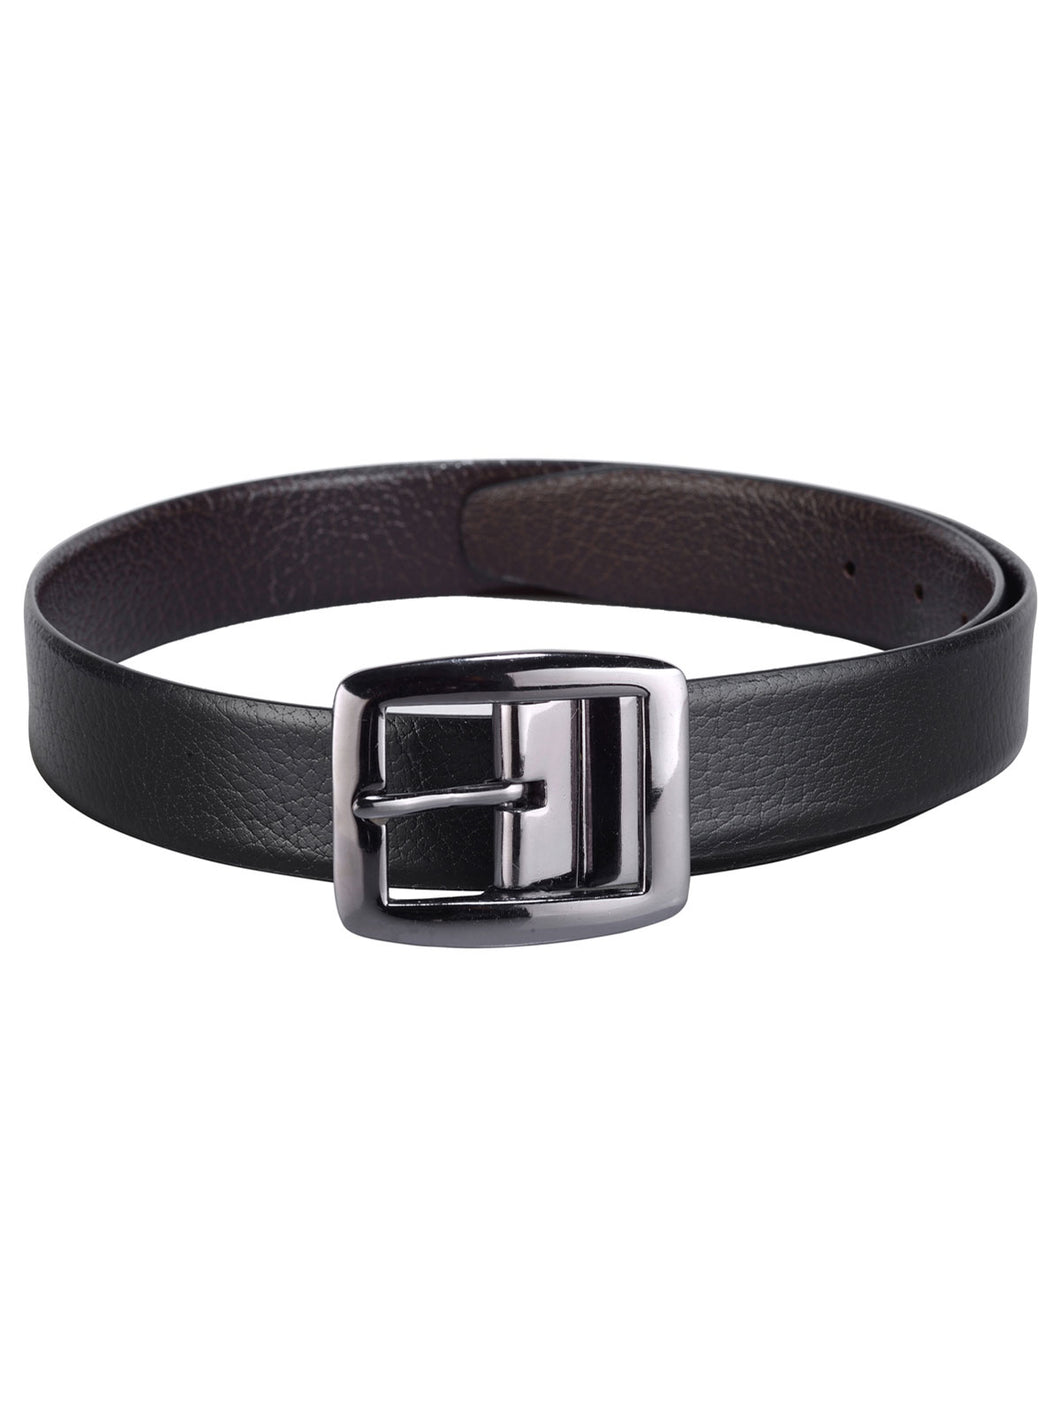 Teakwood Leathers Men's Black Formal Waist Belt